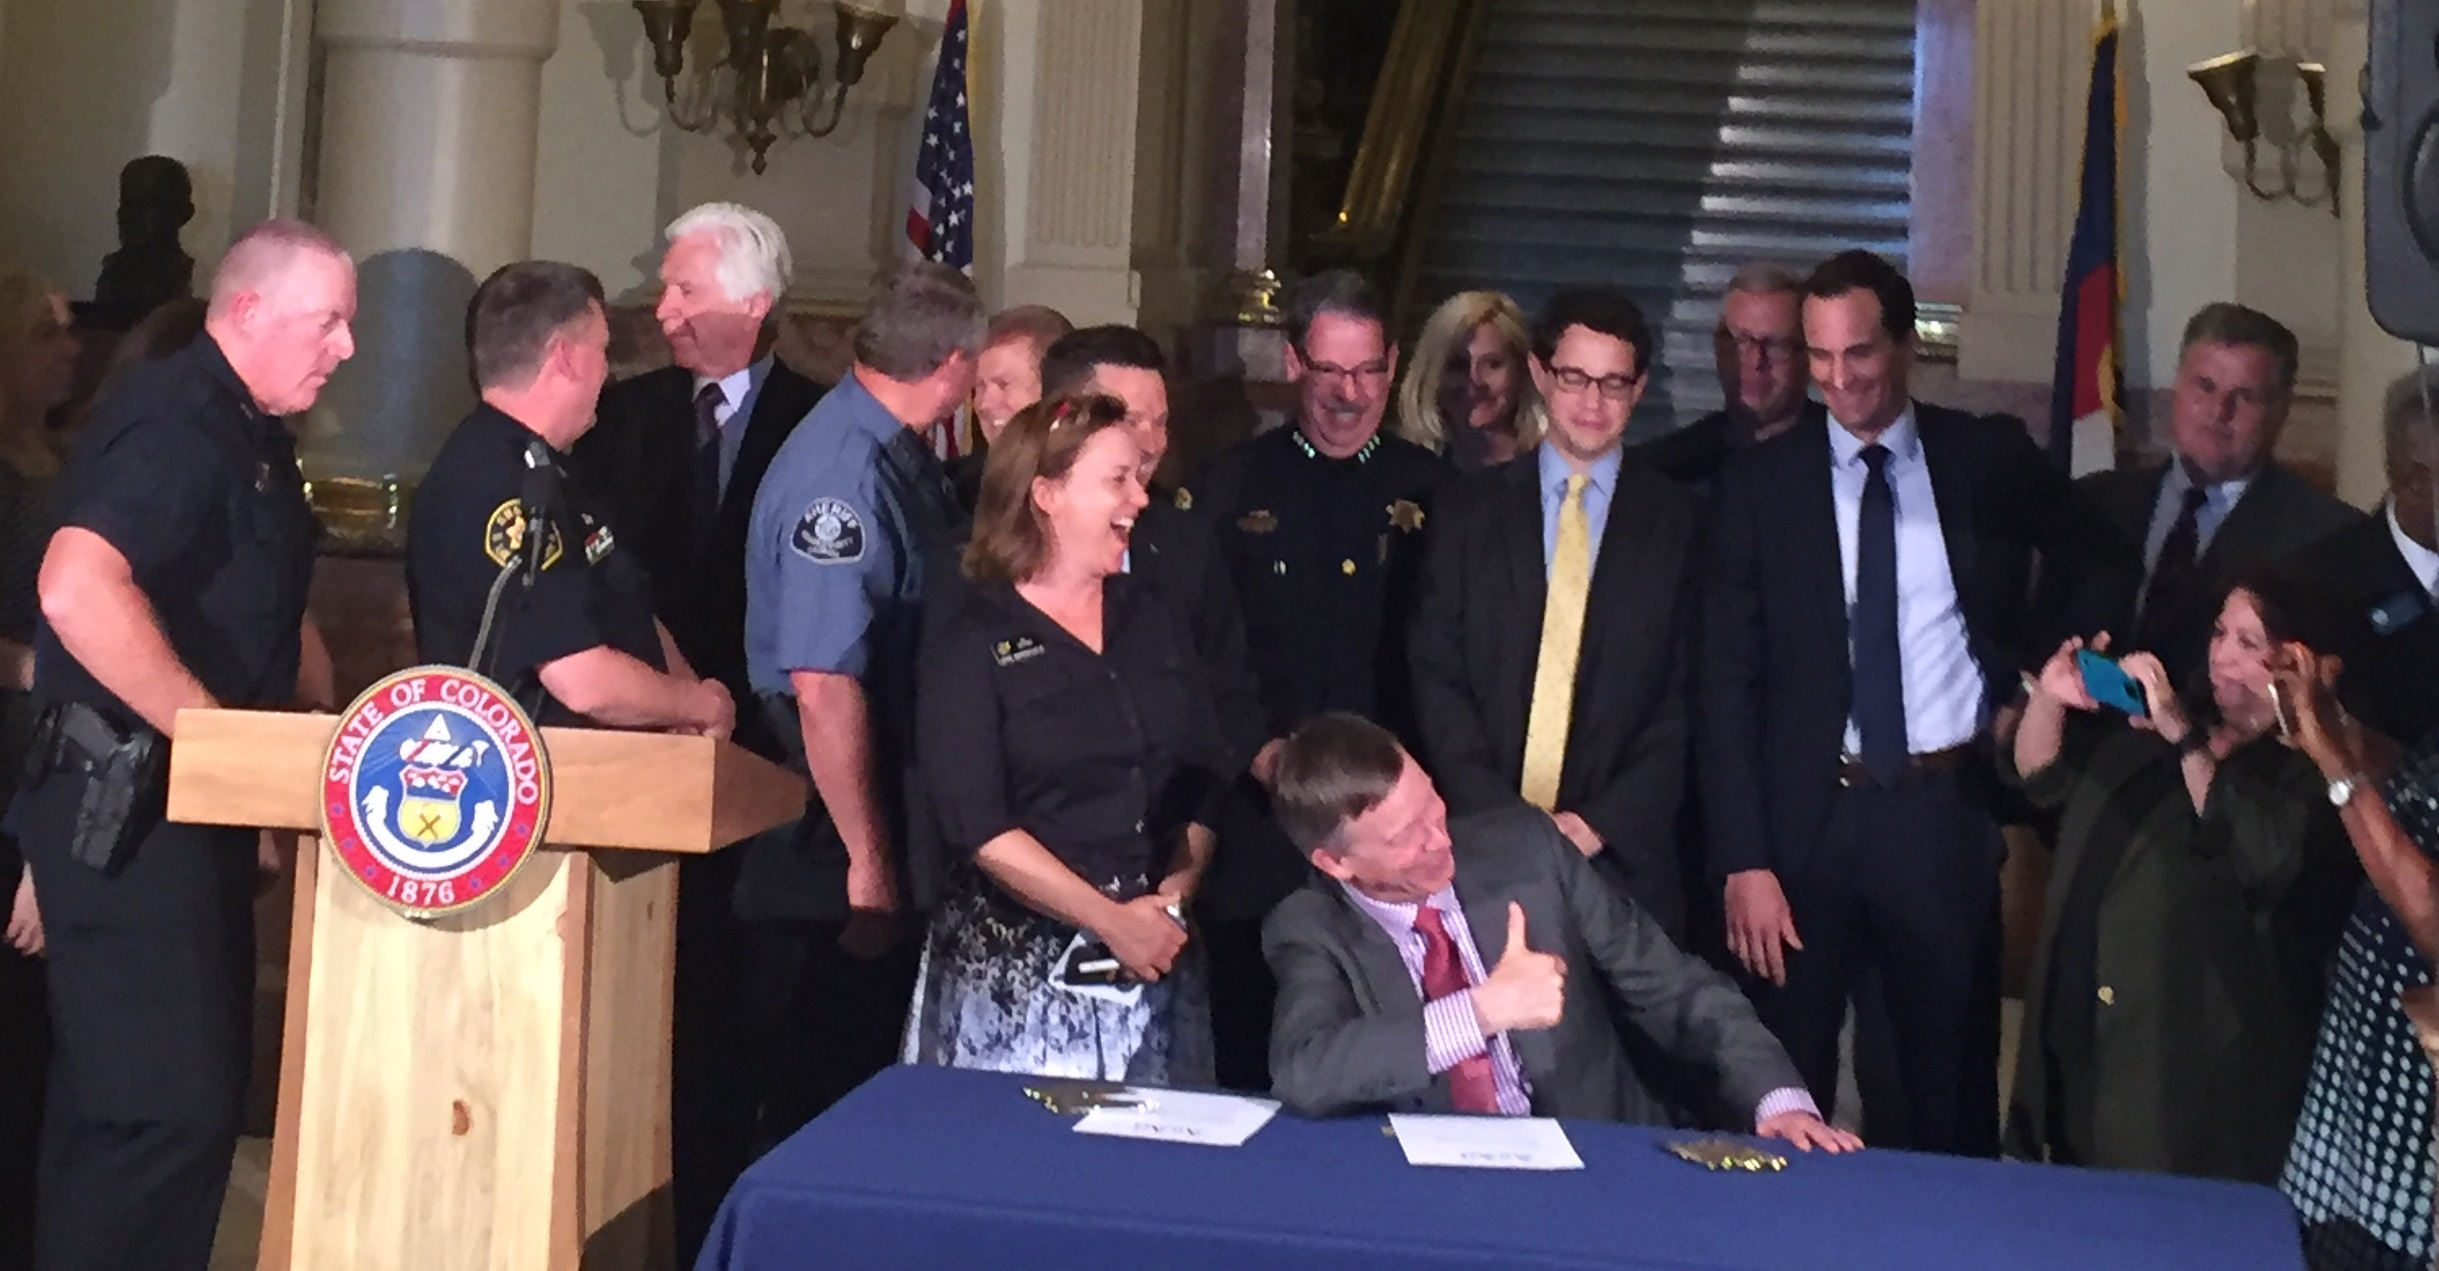 Governor Hickenlooper Gives Thumbs Up at Bill Signing